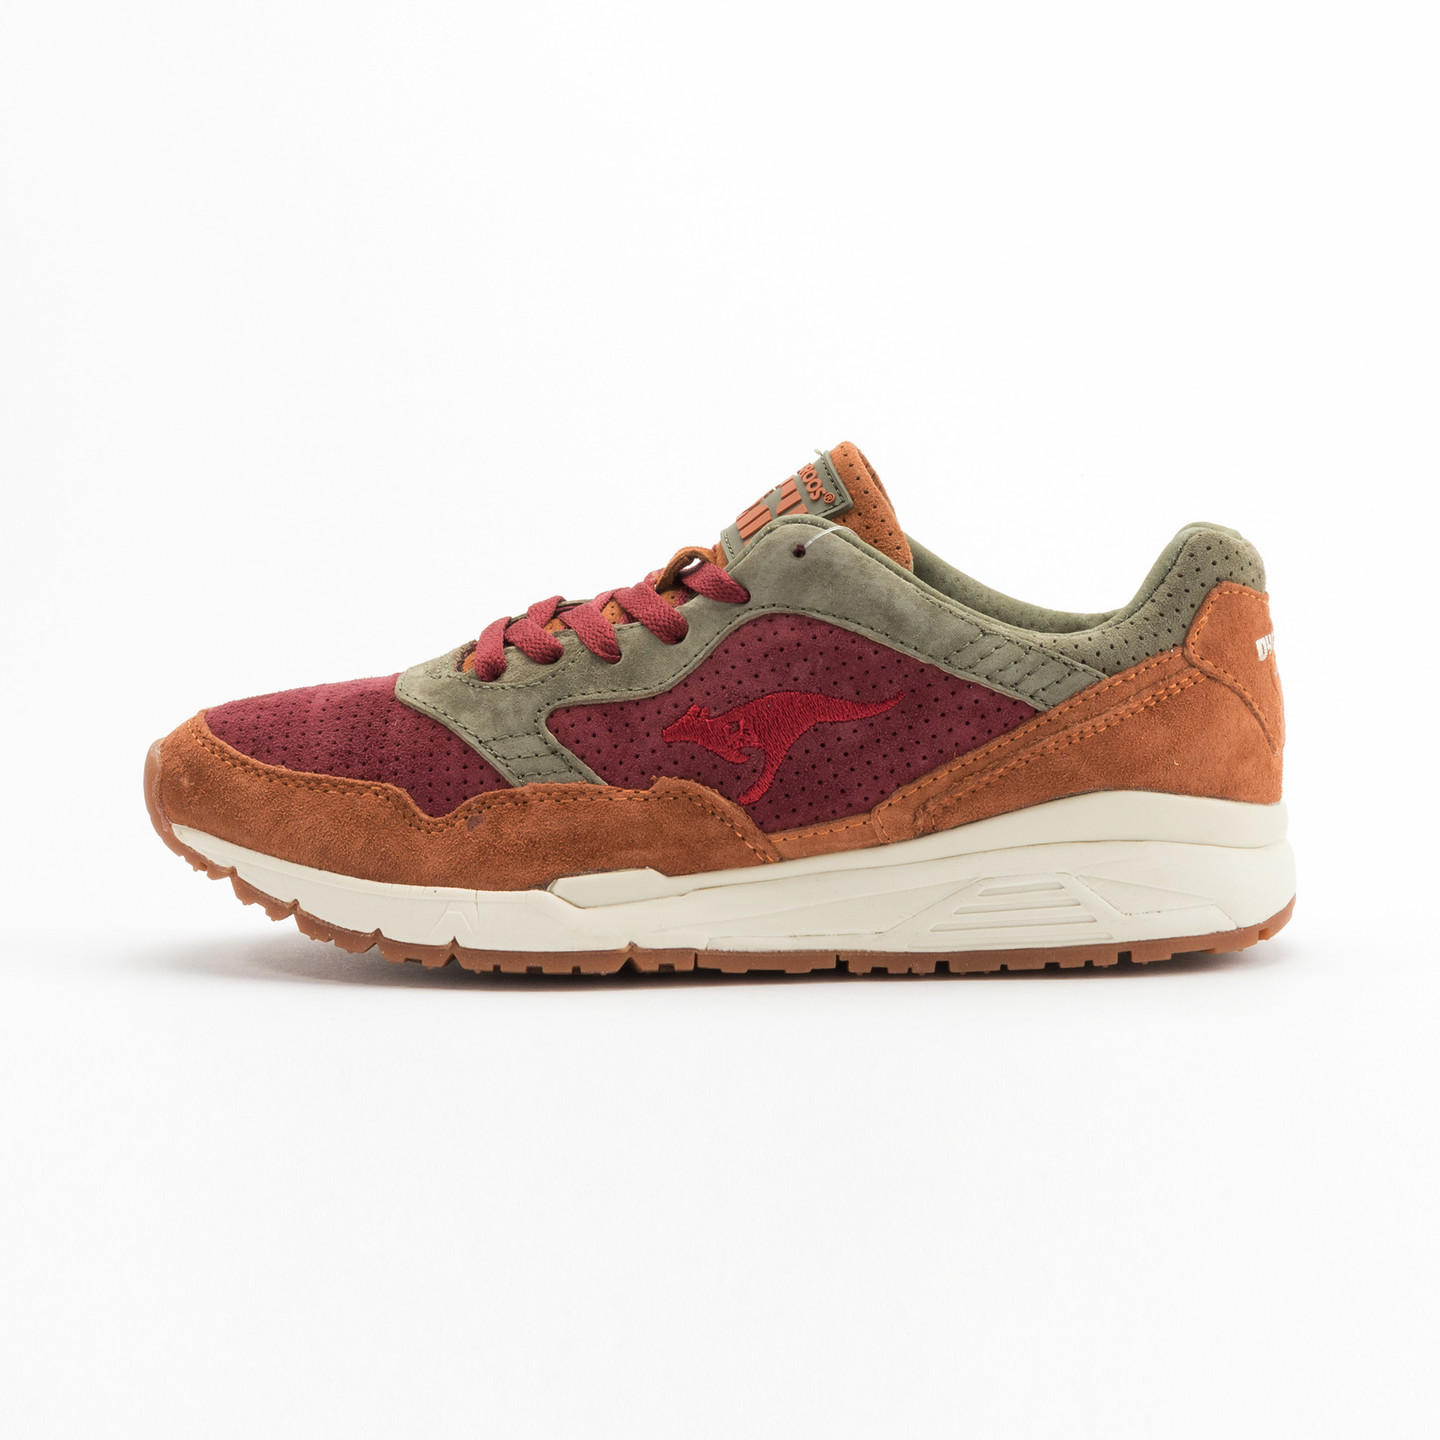 KangaROOS Ultimate Leather Cognac / Wine 47211 0 367-45